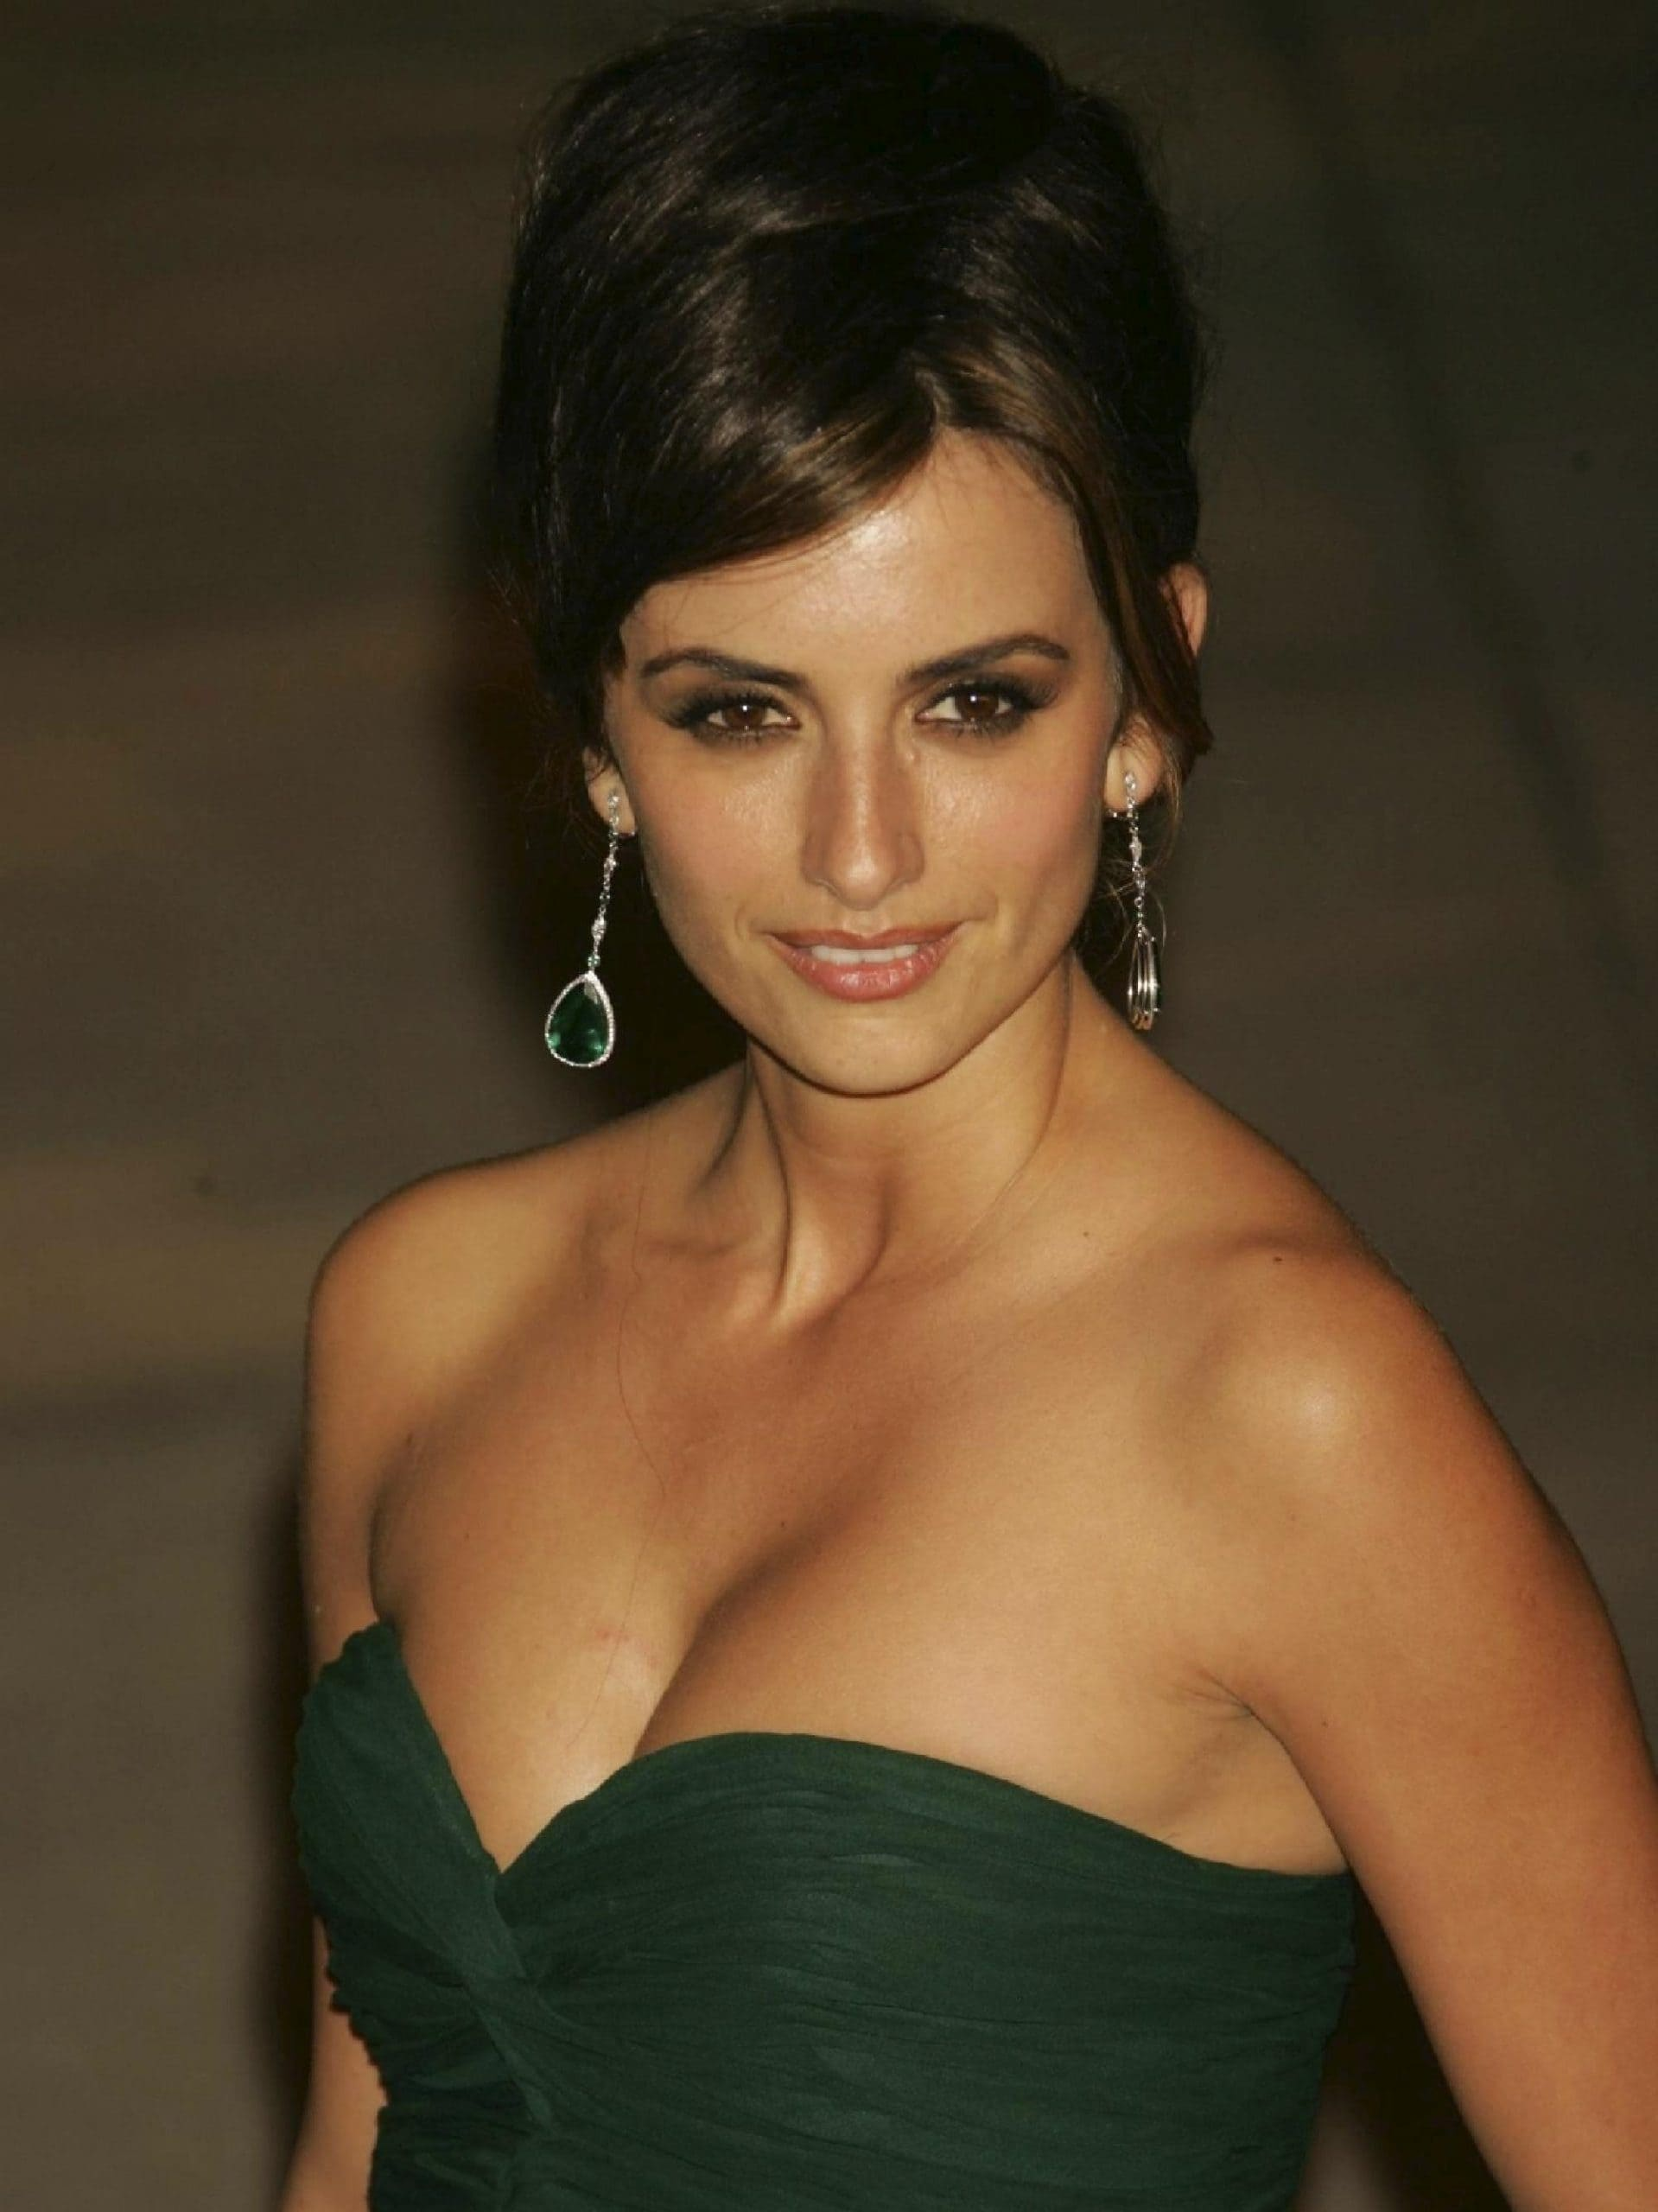 Penelope Cruz is opposed to plastic surgery and wants to age naturally